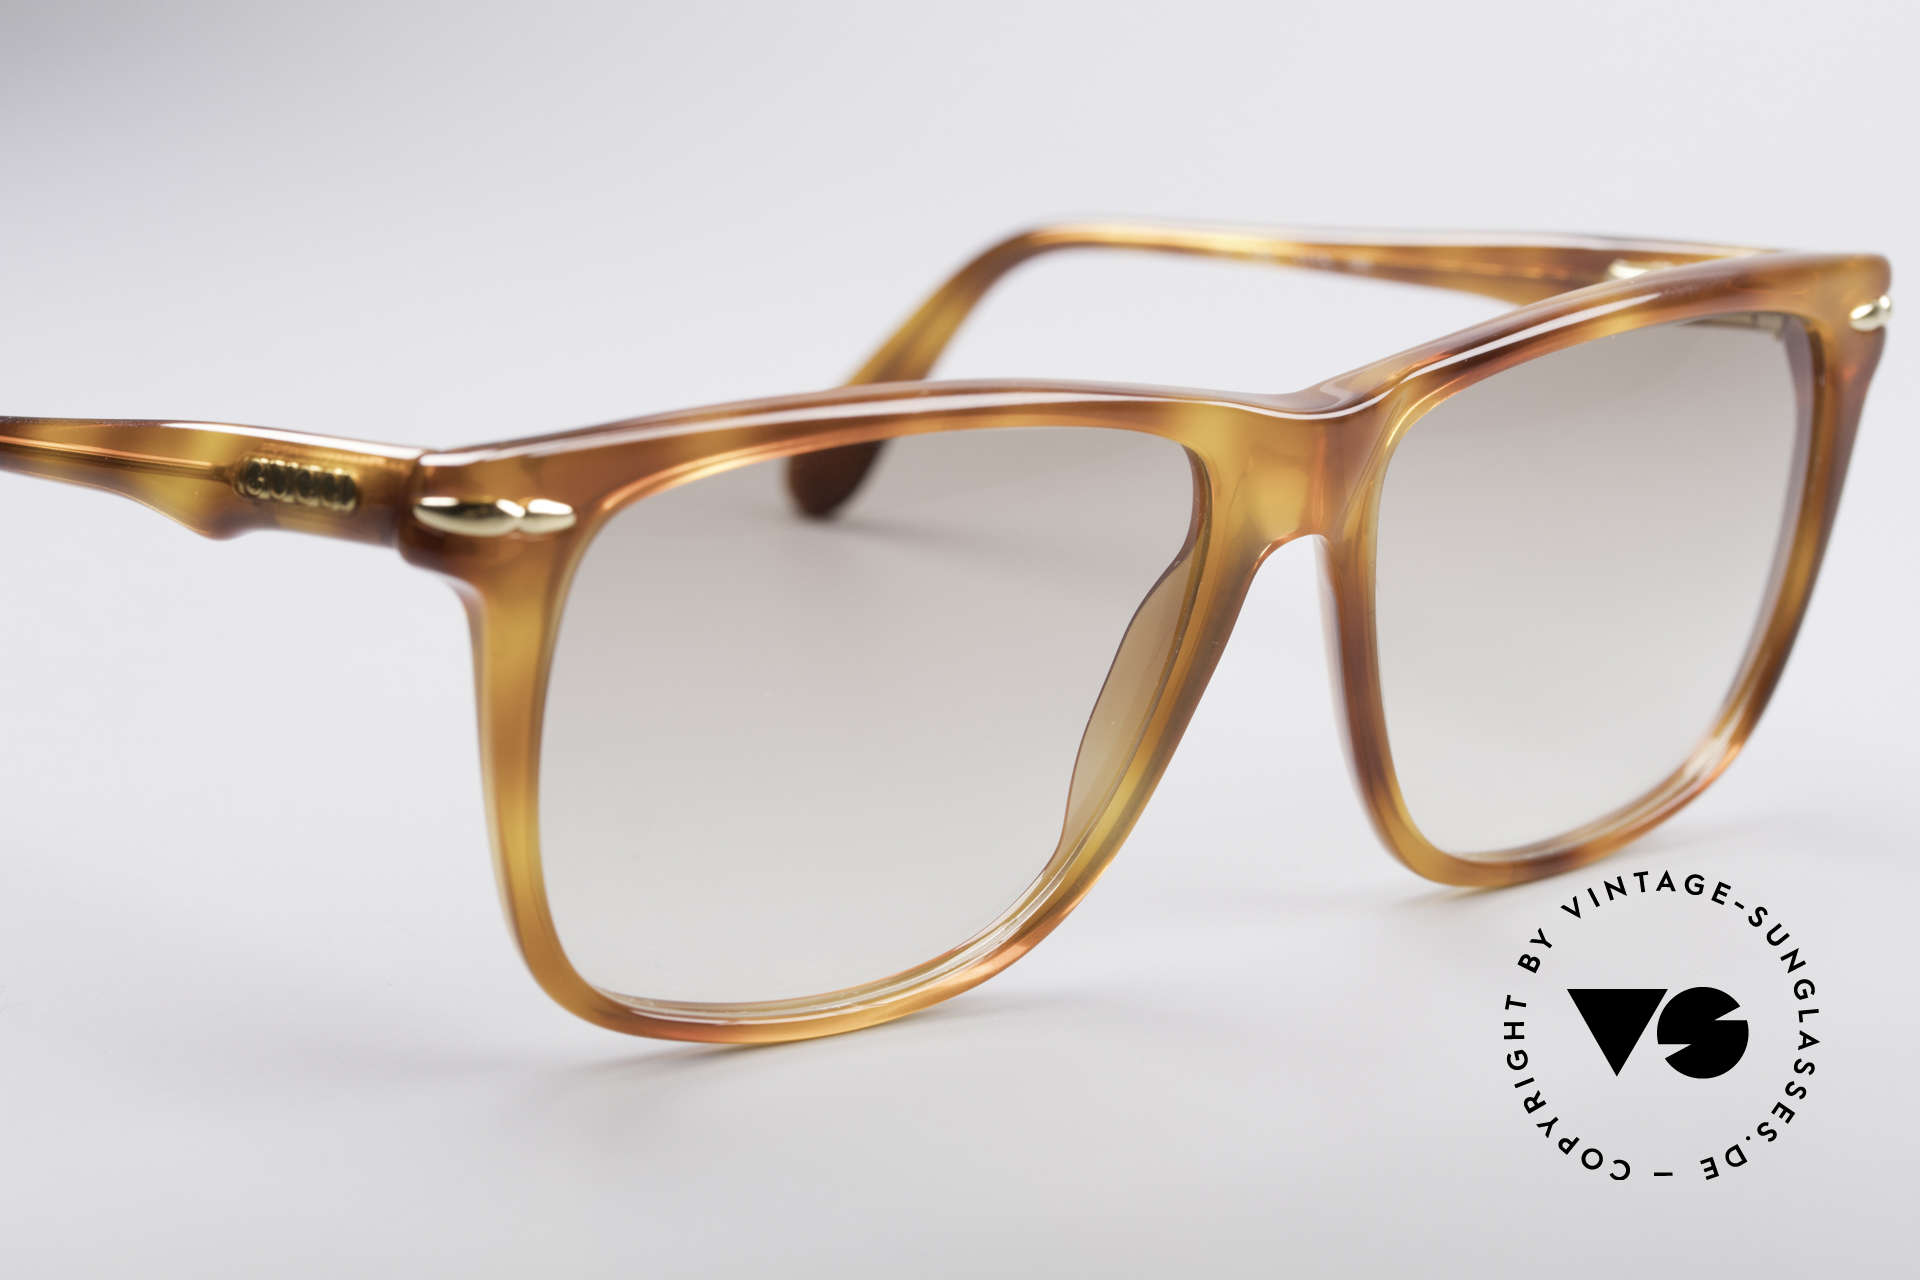 Gucci 1115 Classic 80's Sunglasses, NO RETRO SHADES but a 30 years old ORIGINAL, Made for Men